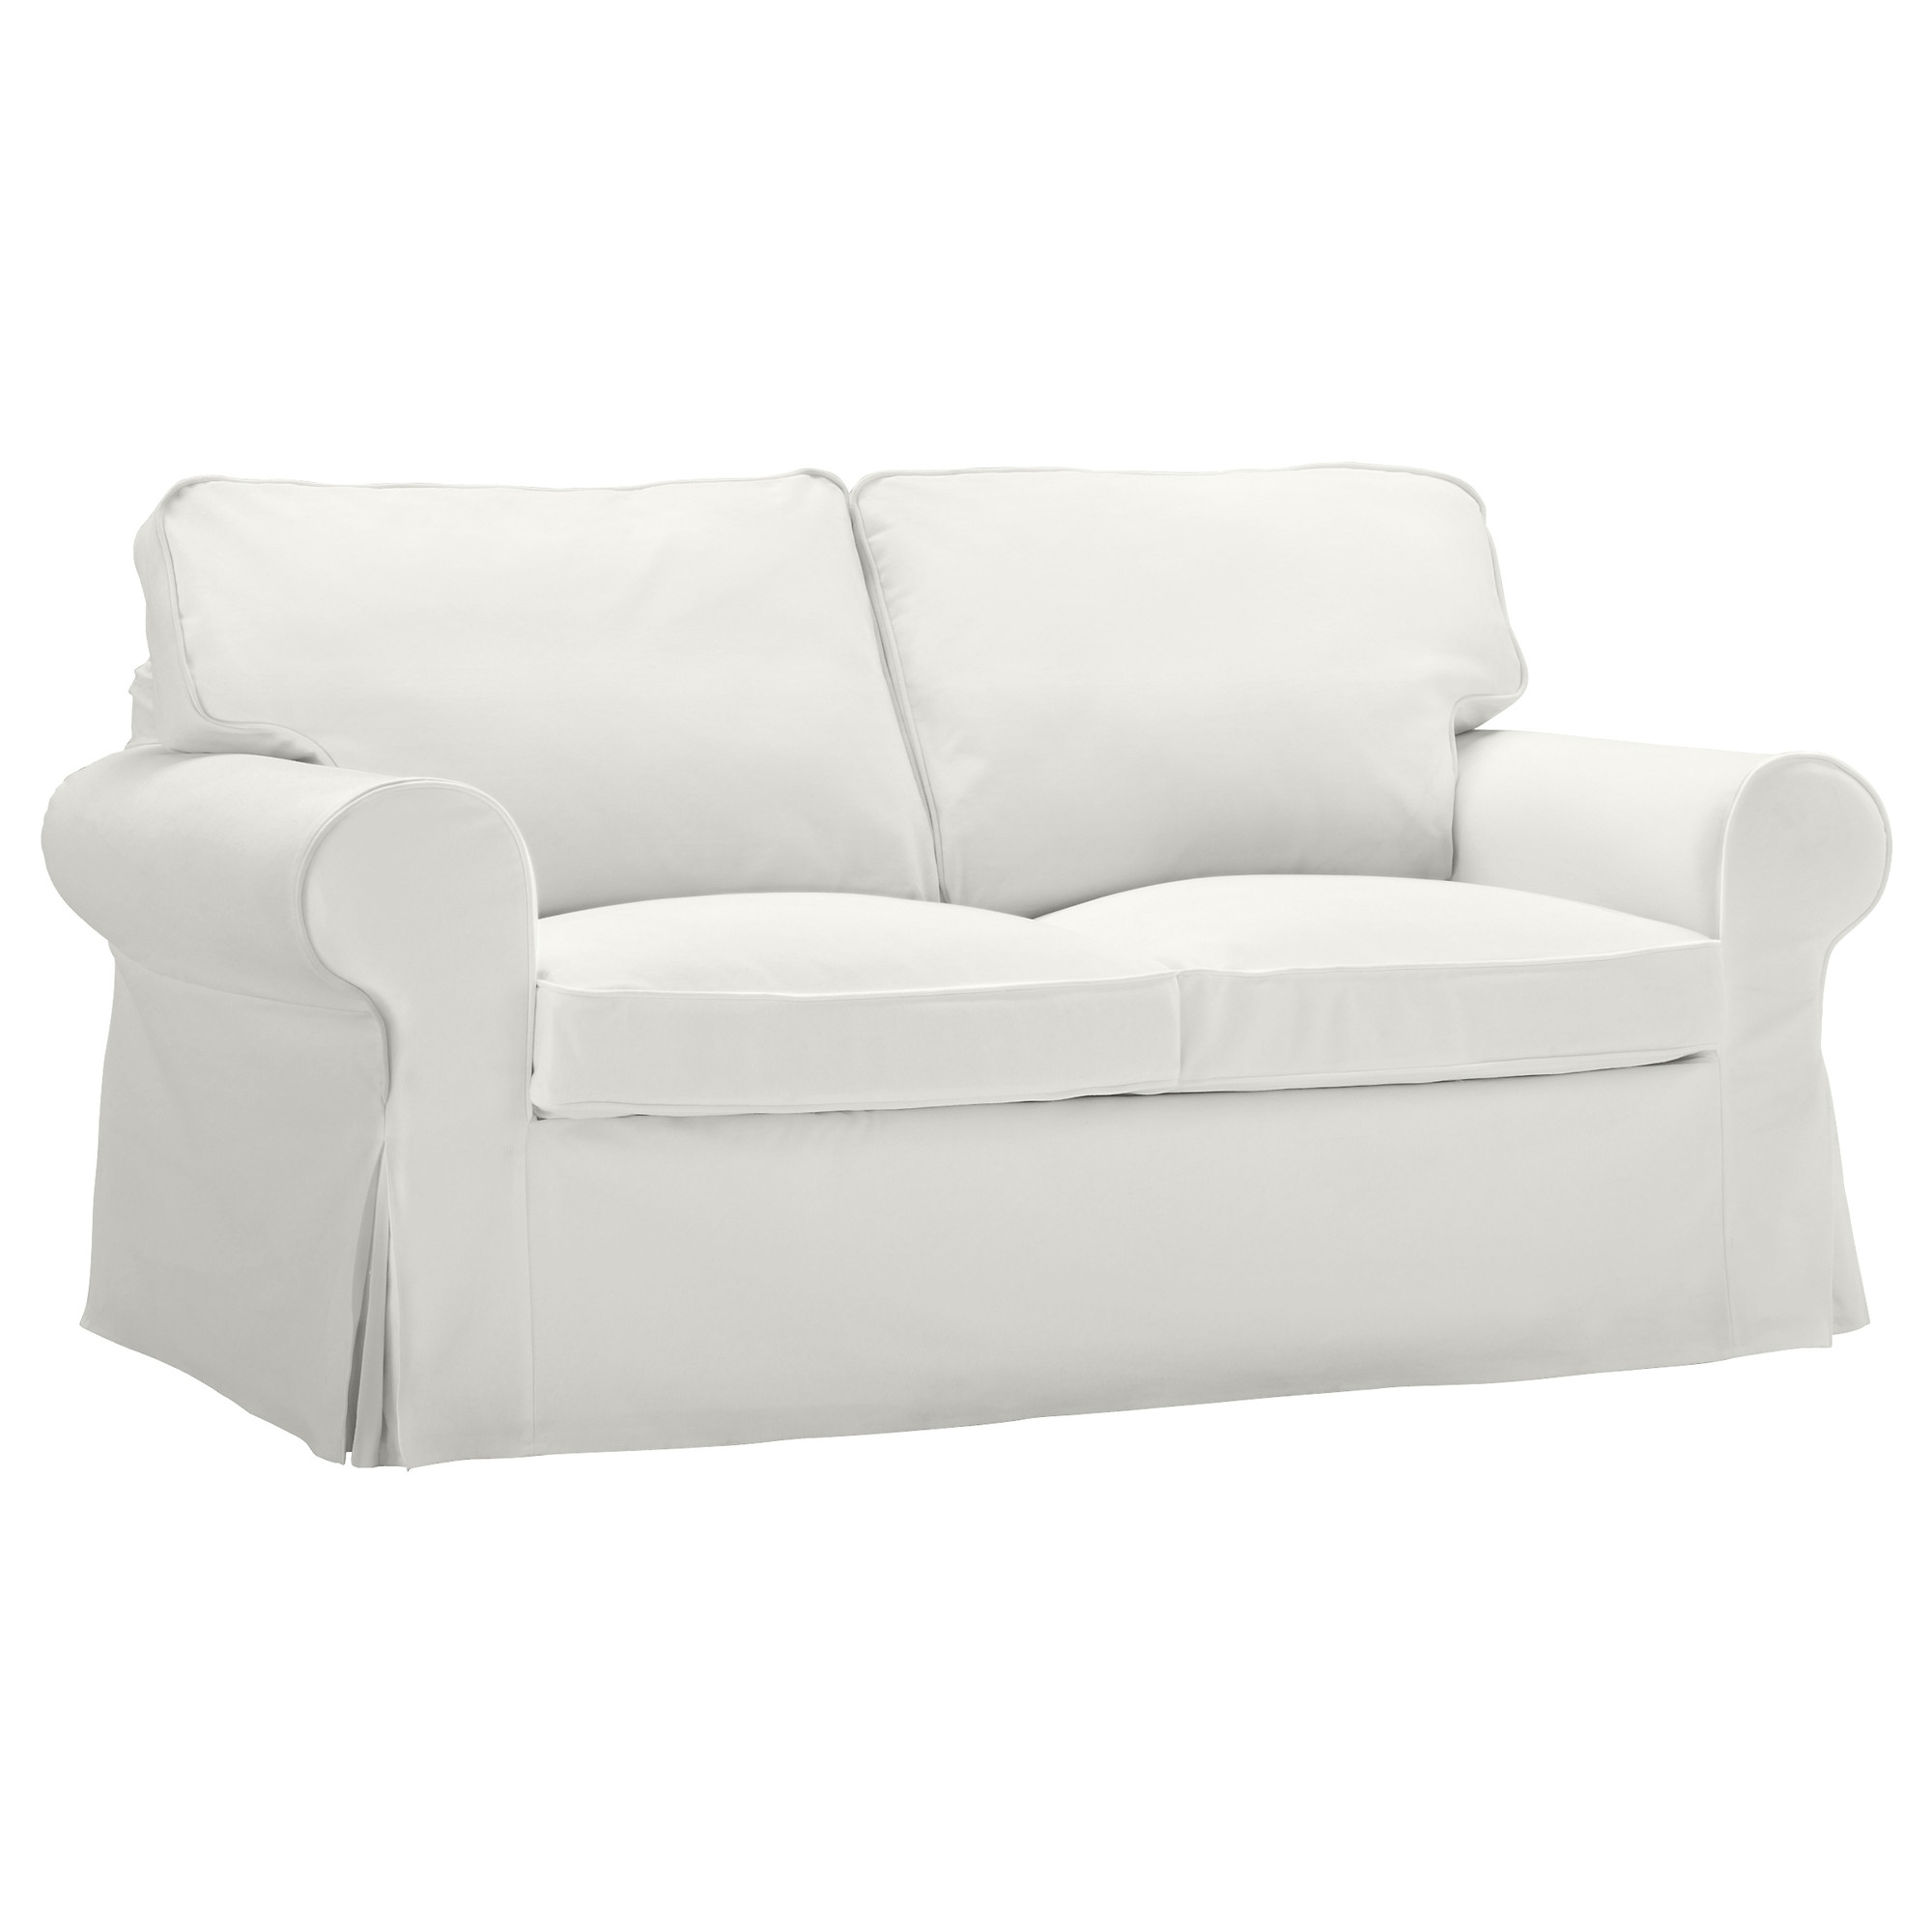 Most Recently Released Ikea Two Seater Sofas In Ektorp Two Seat Sofa Blekinge White – Ikea (View 15 of 20)